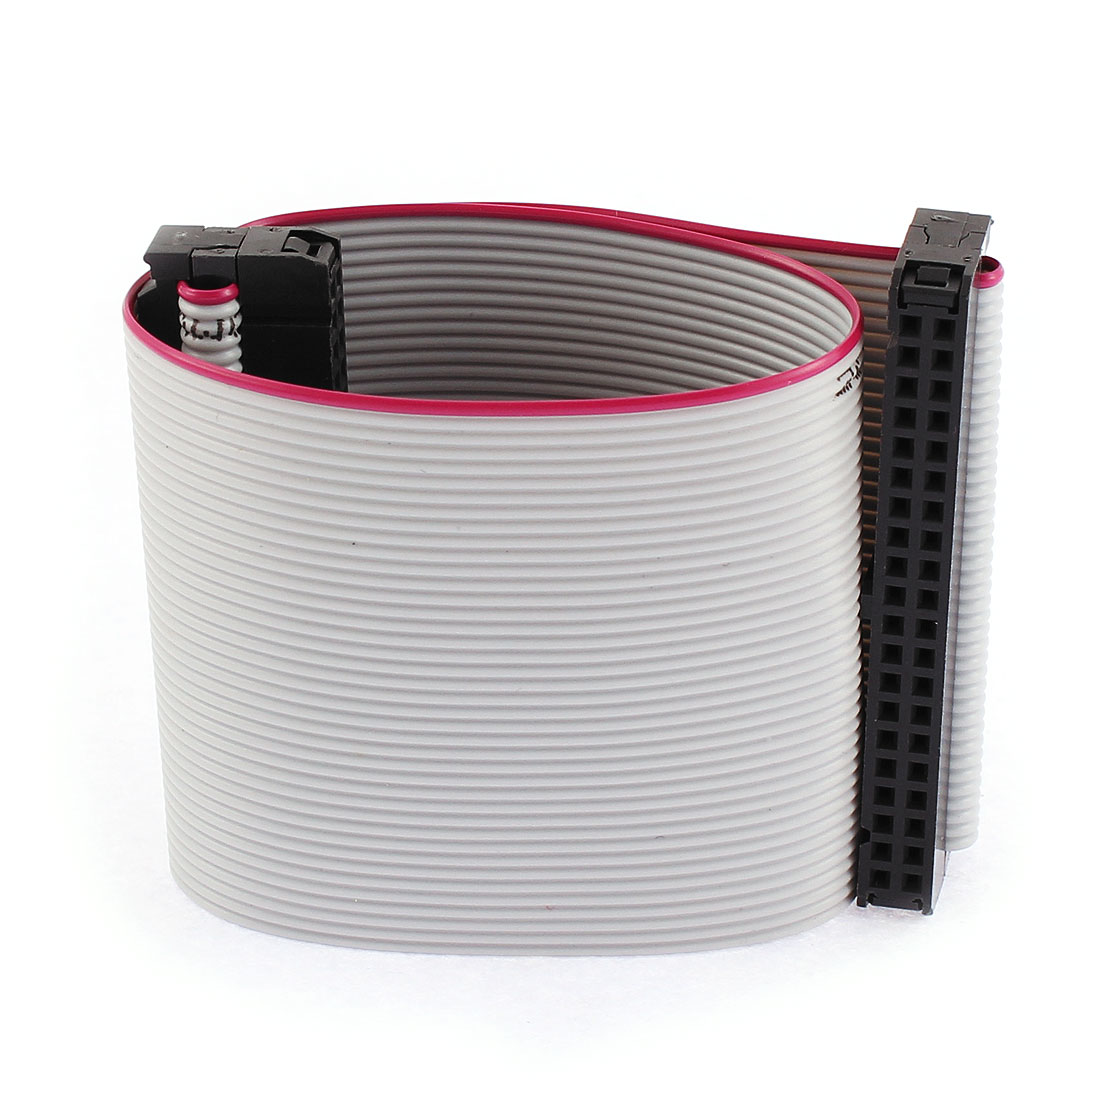 2.54mm Pitch 40 Pin IDC Connector Flat Ribbon Cable Wire 20cm Long 3 Pcs